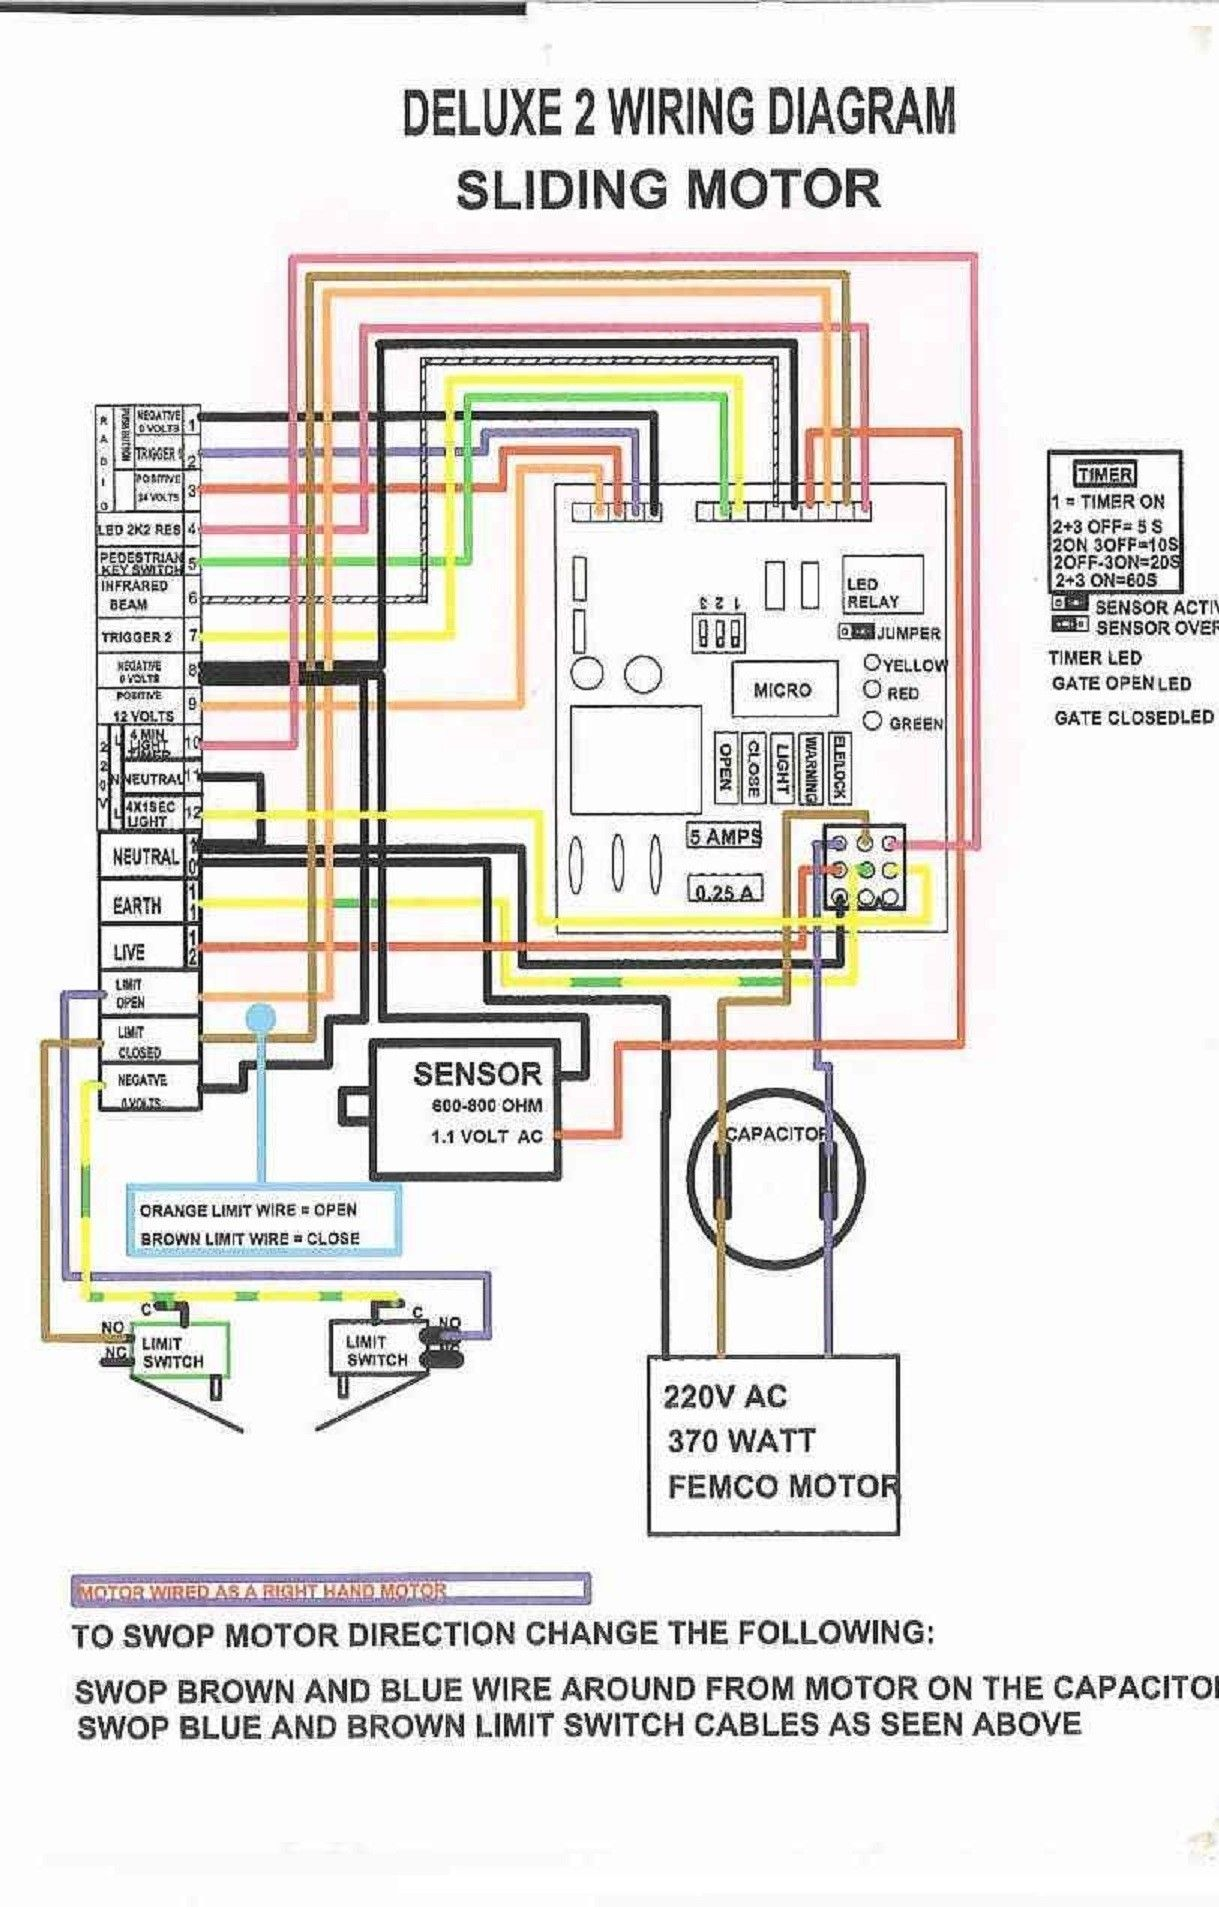 Unique Wiring Diagram Electric Gates #diagram #diagramsample  #diagramtemplate #wiringdiagram #dia… | Electrical wiring diagram, Electric  gates, Trailer light wiringPinterest